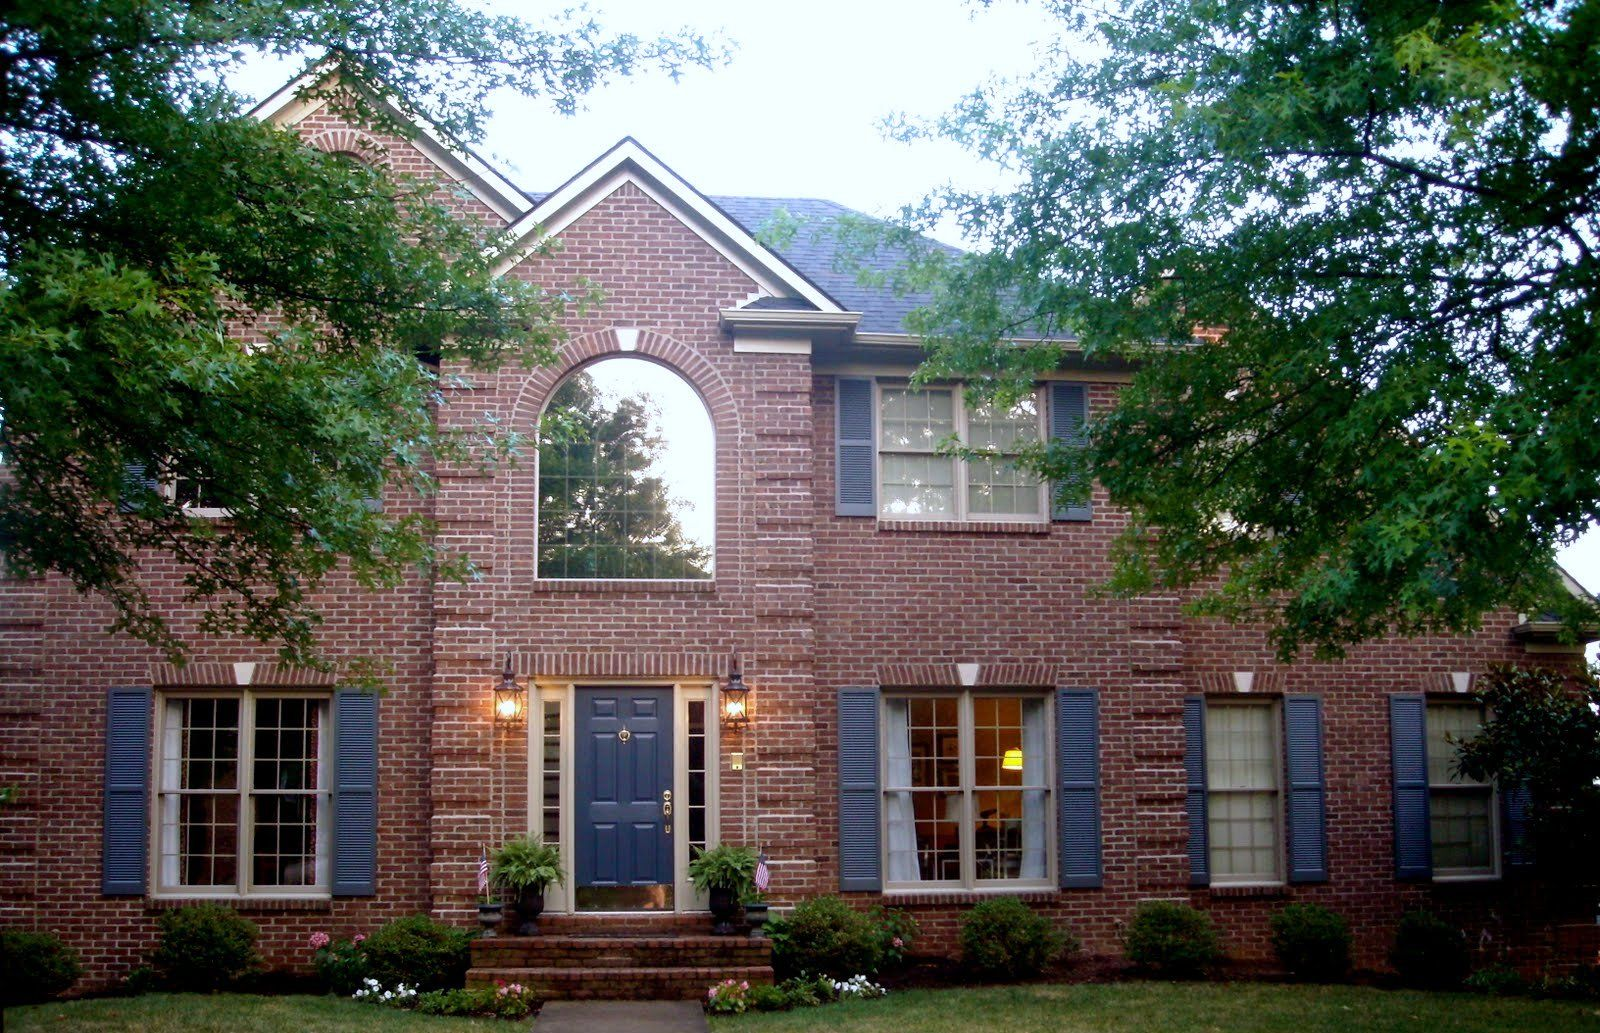 Paint color for exterior red brick blues greys make brick look more red shutters valspar Exterior paint with red brick